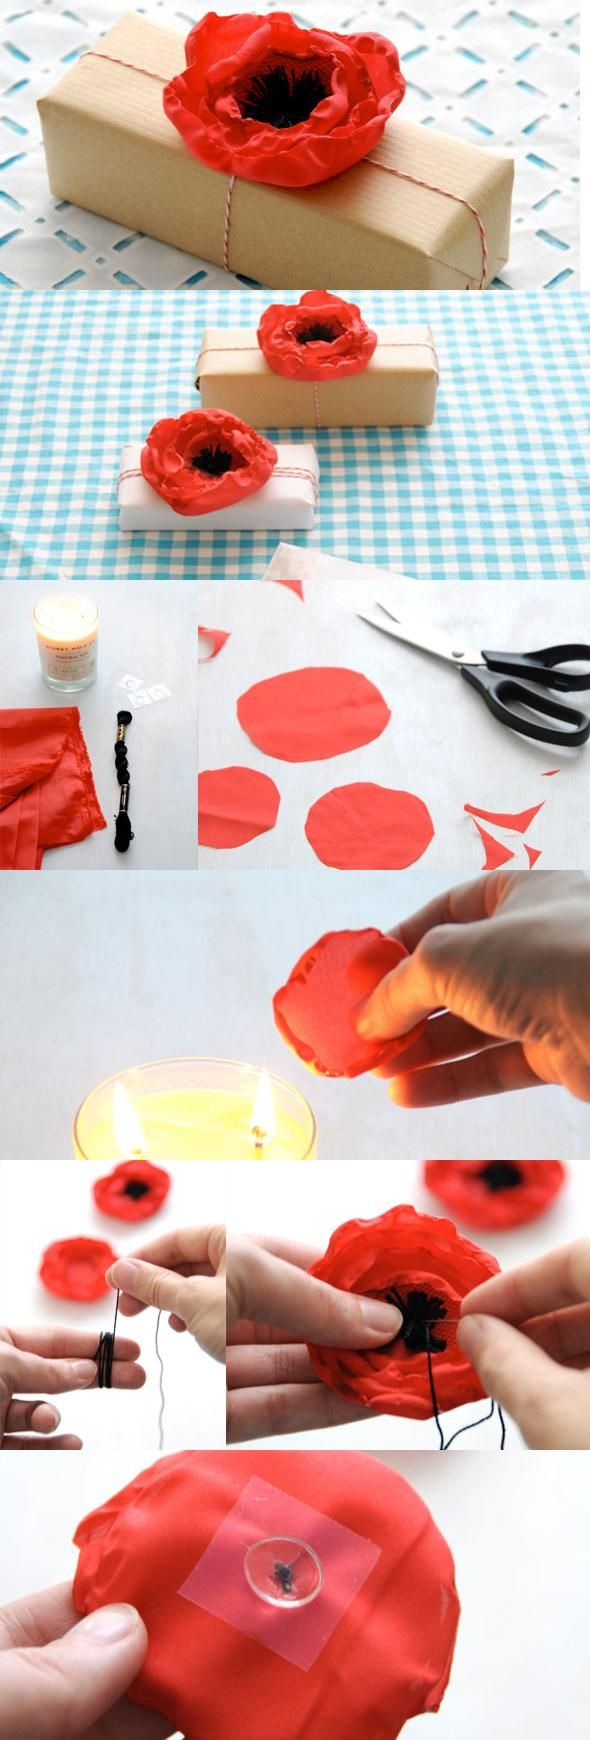 5 Minute DIY Fabric Poppy Flower Gift Toppers